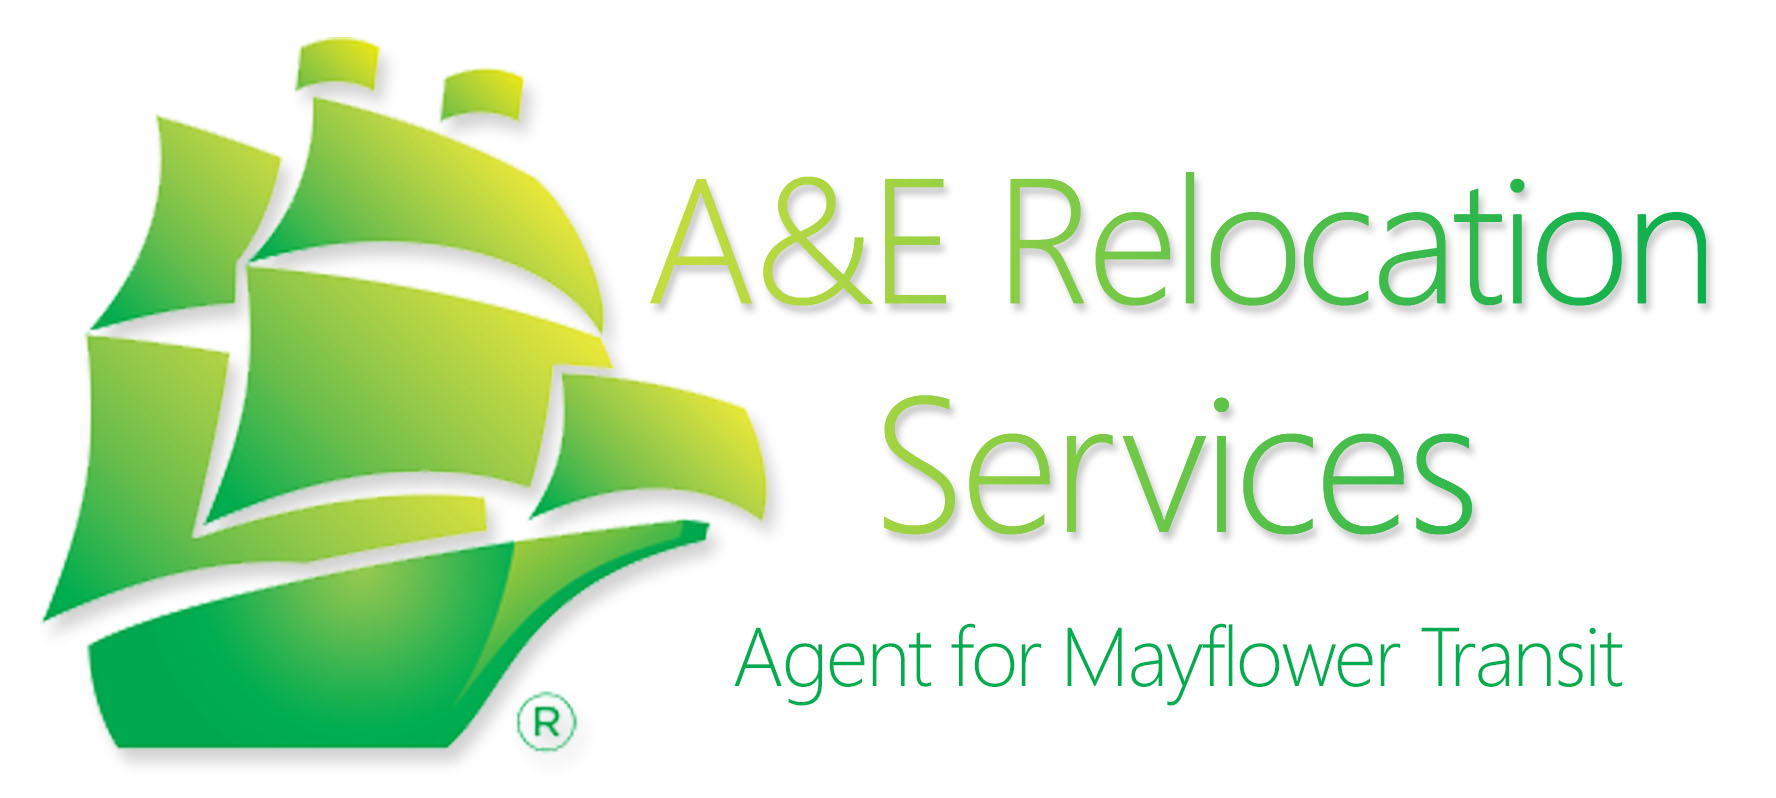 A&E Relocation Services